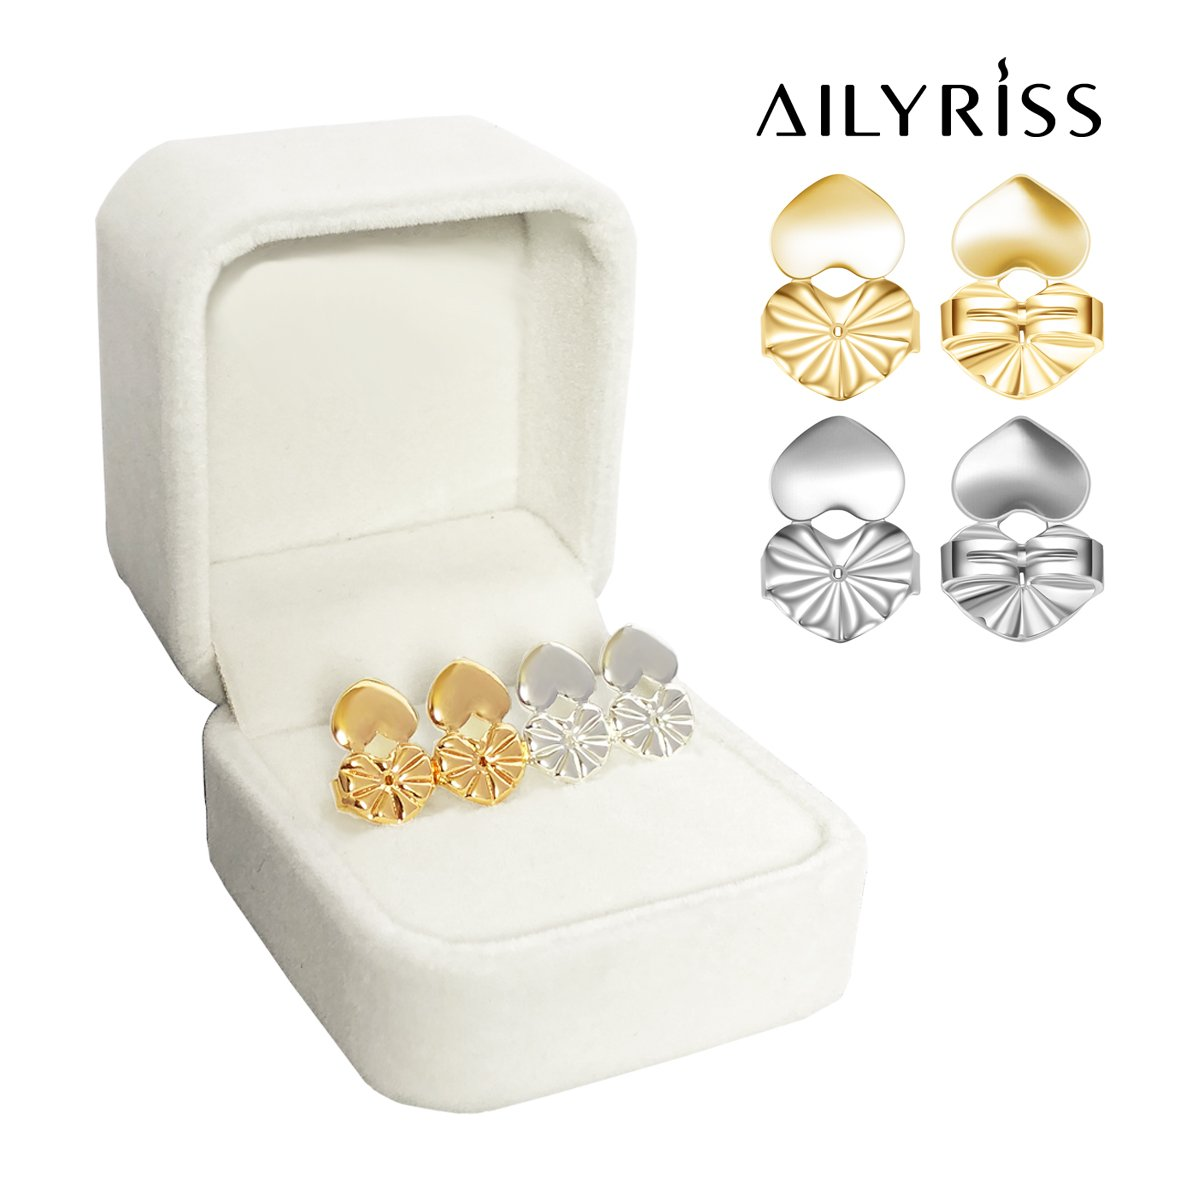 Earring Lifters Earring Lift (1 Pair 18K Gold Plated and 1 Pair Silver Plated) Earring Lifts Hypoallergenic Earring Lifters Back Earrings by AILYRISS (Heart)